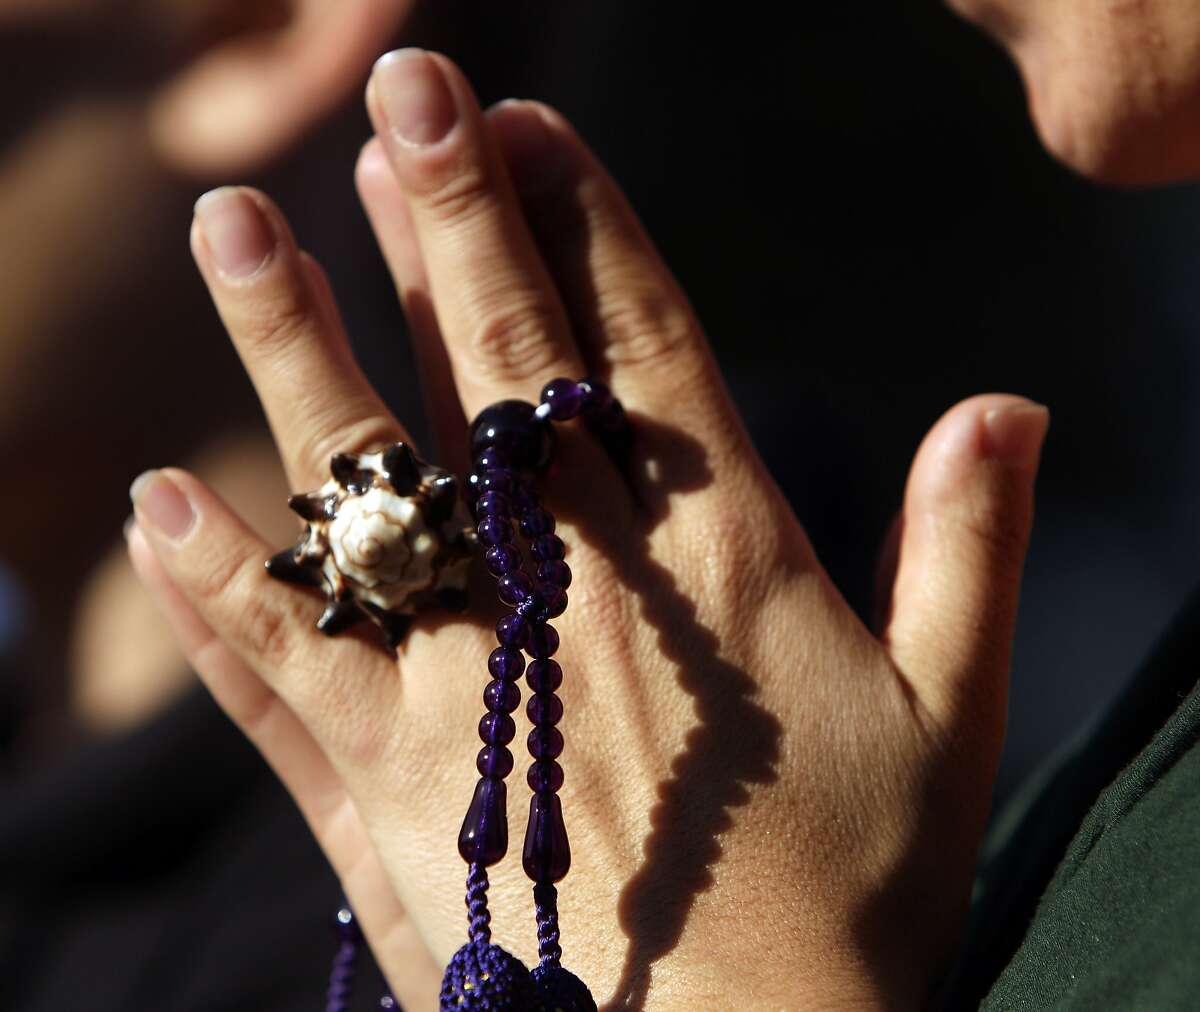 A young woman clasps her hands with buddhist prayer beads as family and friends of Alejandro Nieto gathered on Bernal Heights Park in San Francisco, Calif., on Monday, March 24, 2014. Nieto was fatally shot by San Francisco police officers Friday evening at Bernal Heights Park.